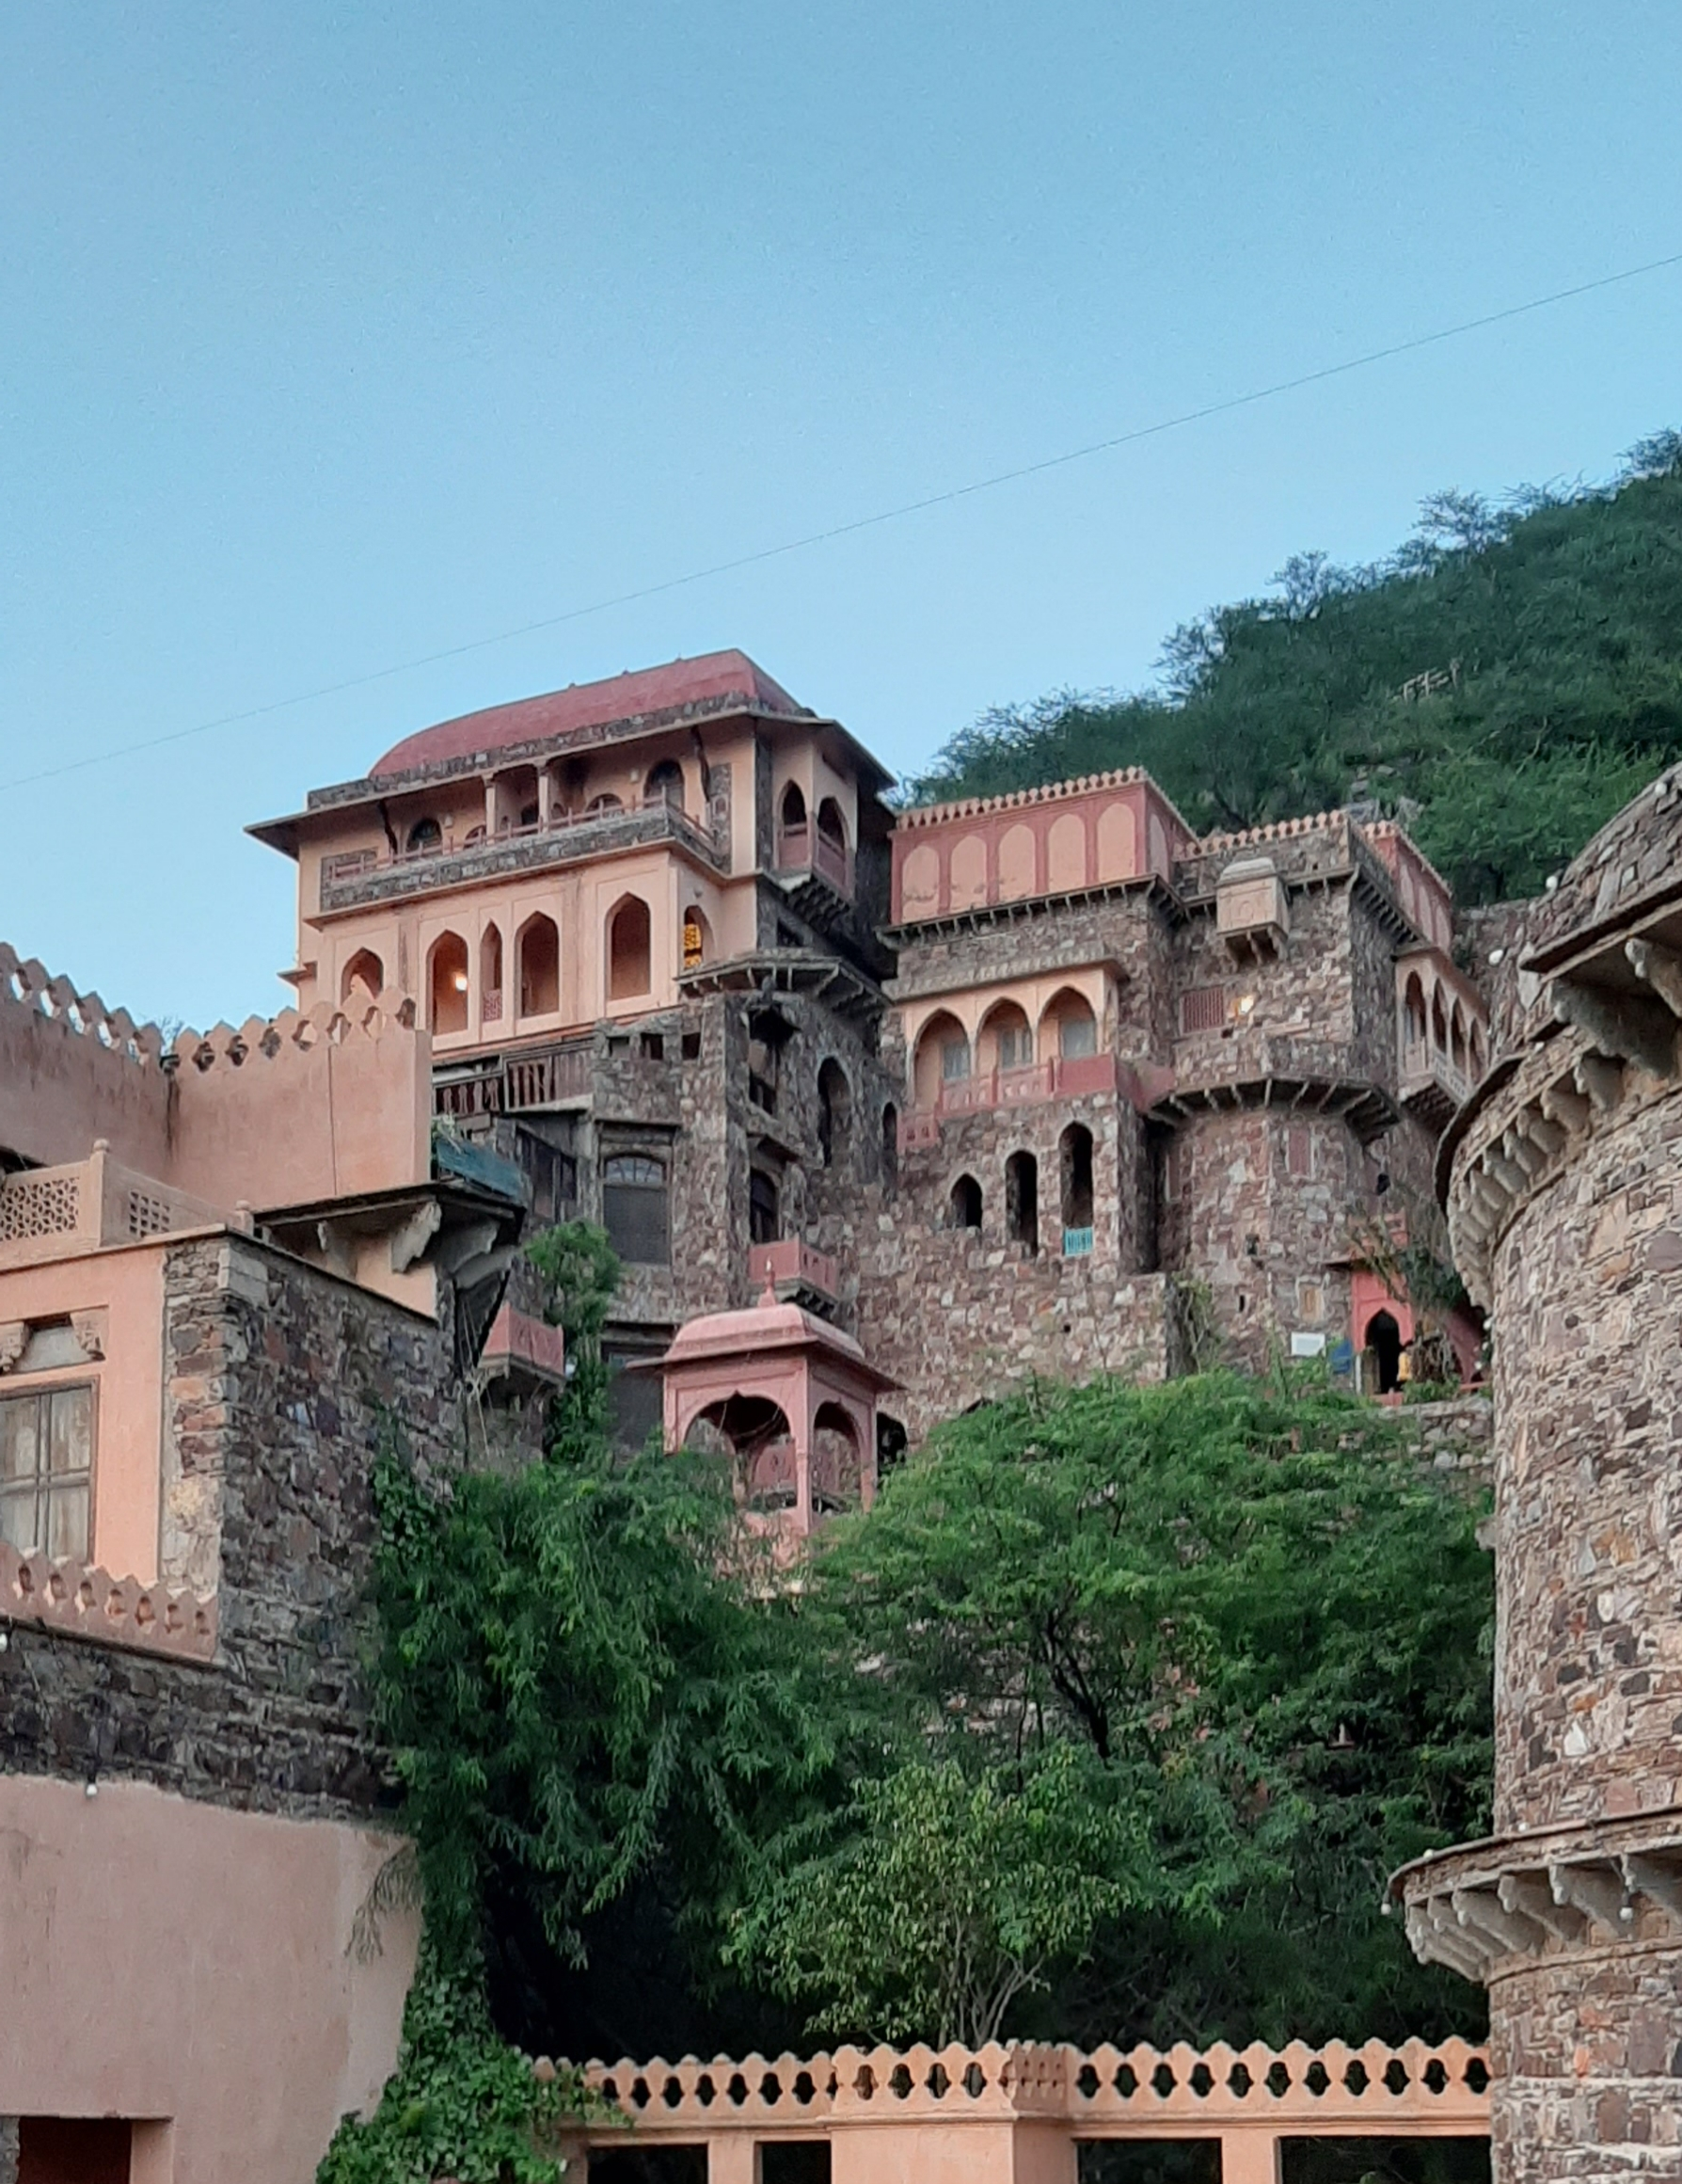 Architecture of the Neemrana Fort, Rajasthan